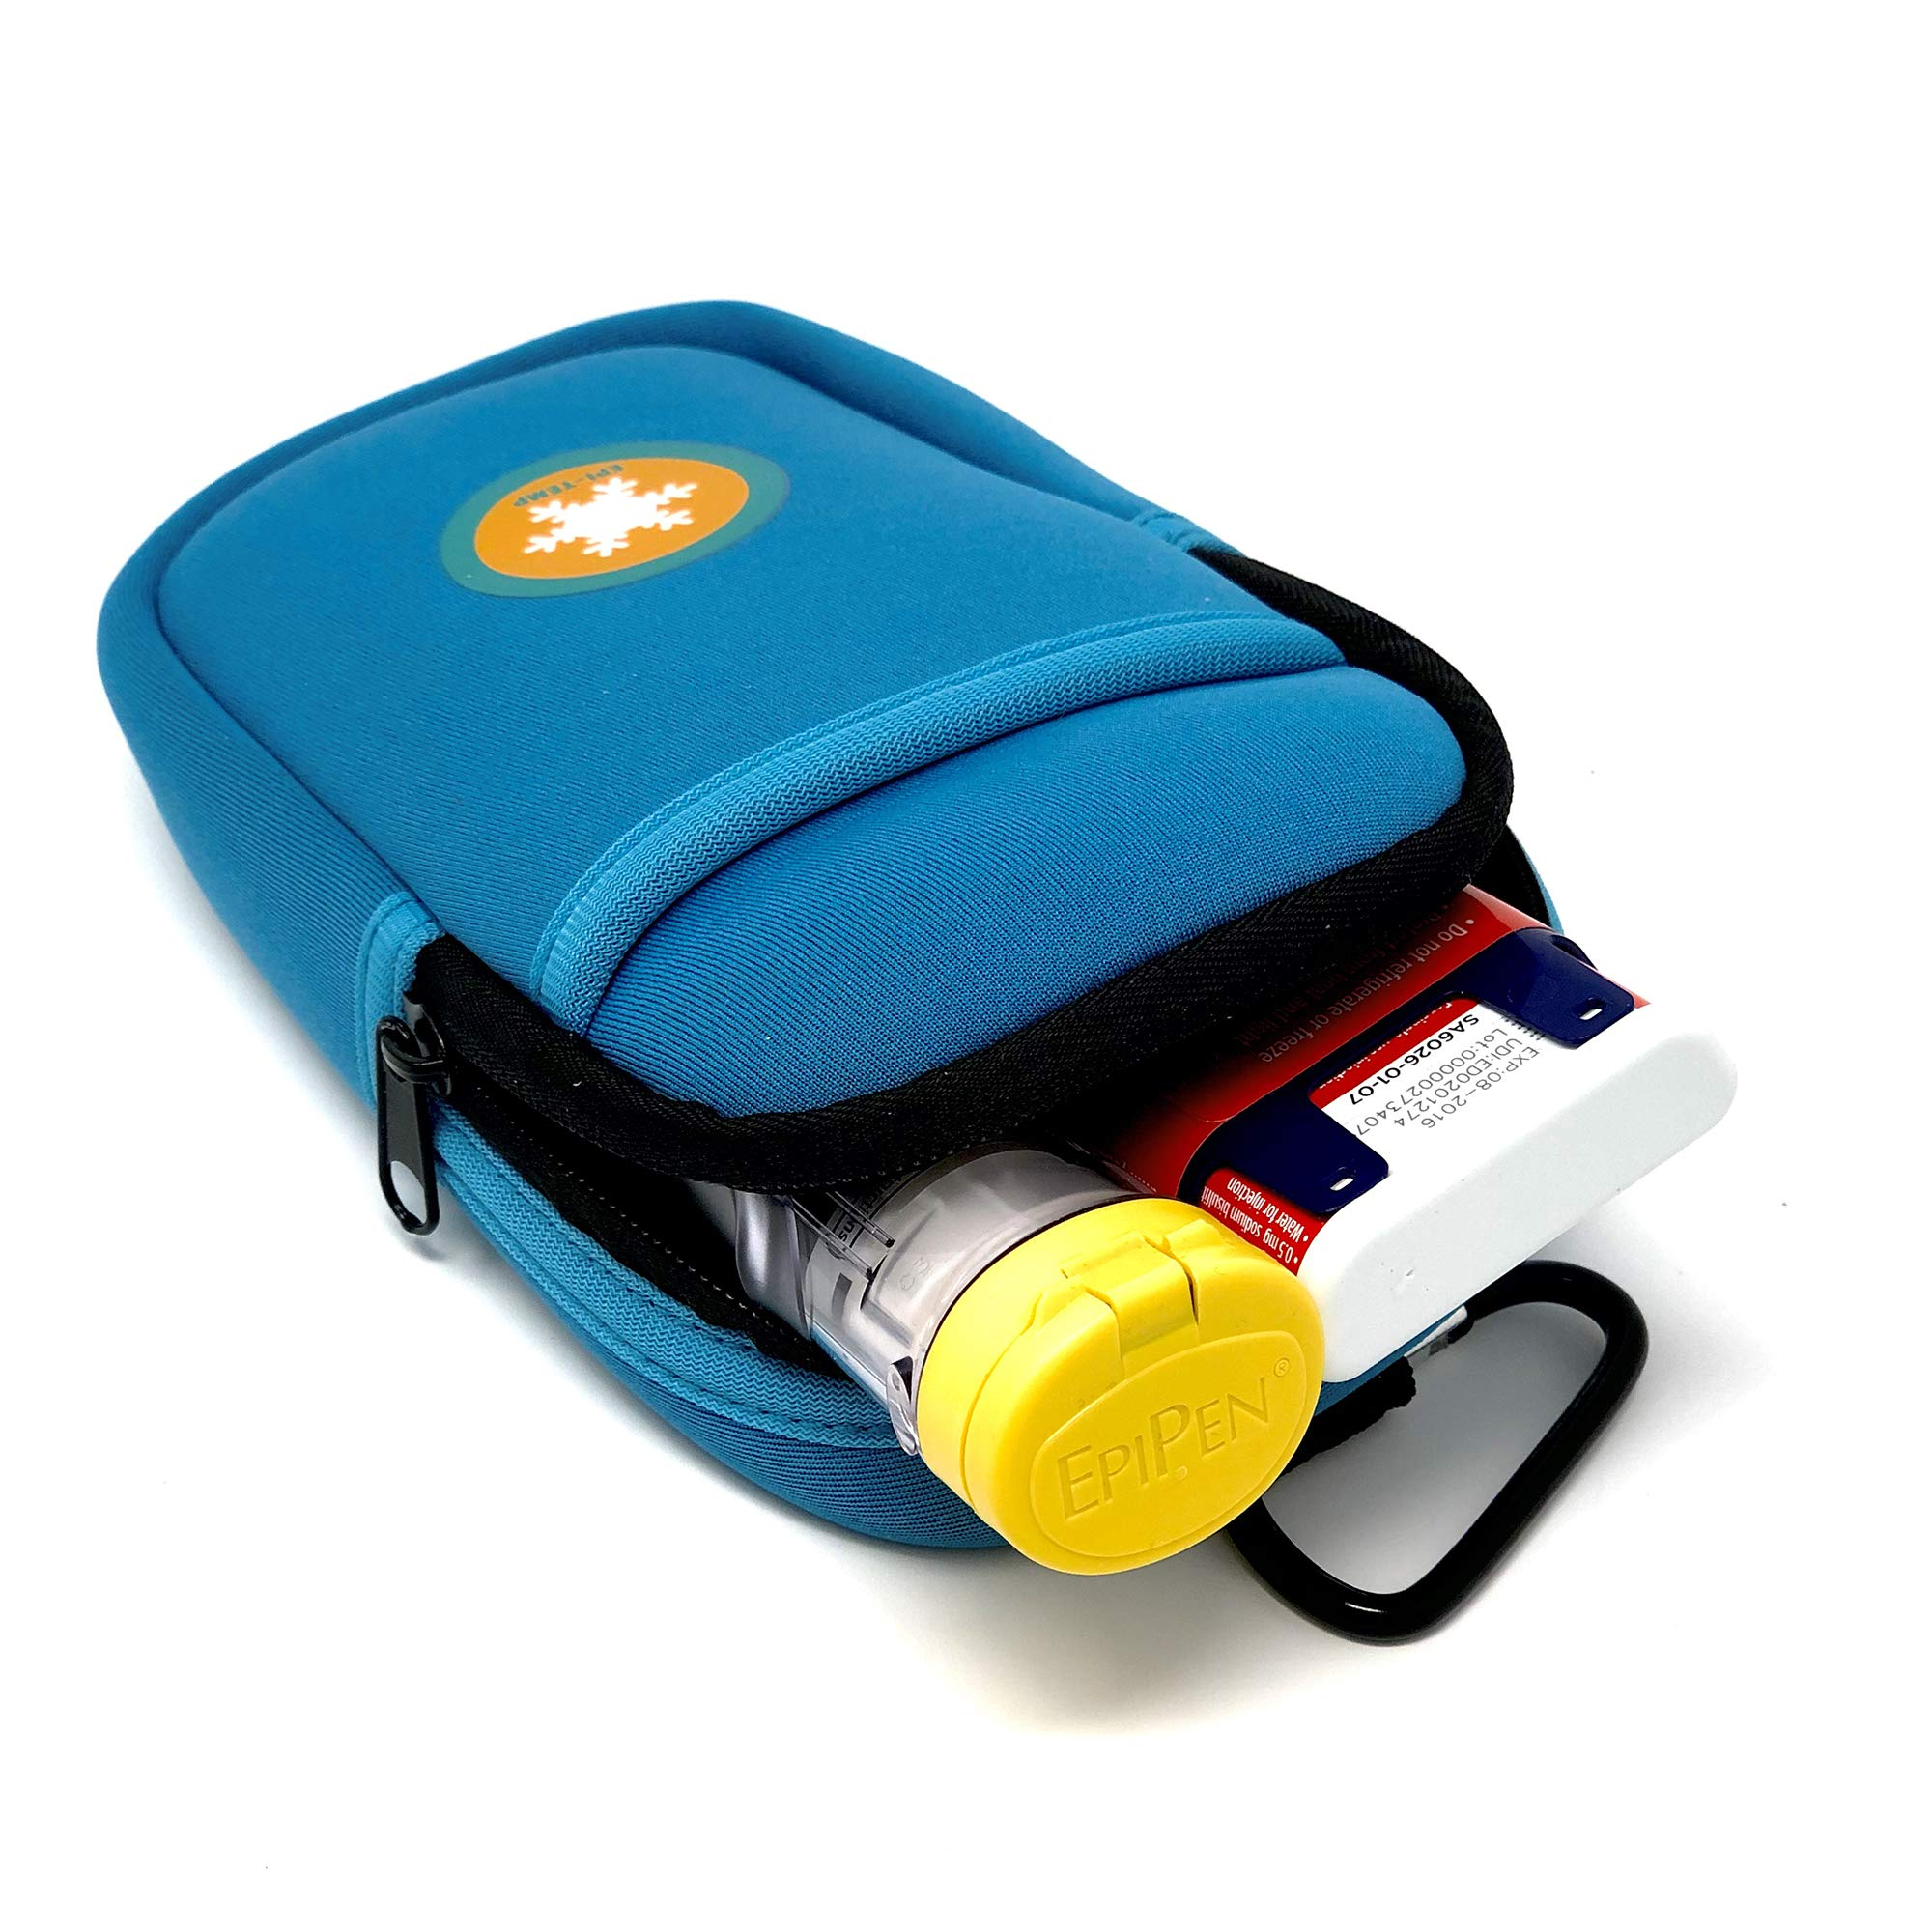 EPI-TEMP Epipen Insulated Case for Kids, Adults - Smart Carrying Pouch, Storage Bag, Powered by PureTemp Phase Change Material to Keep Epinephrine in Safe Temperature Range (Teal) by EPI-TEMP (Image #6)